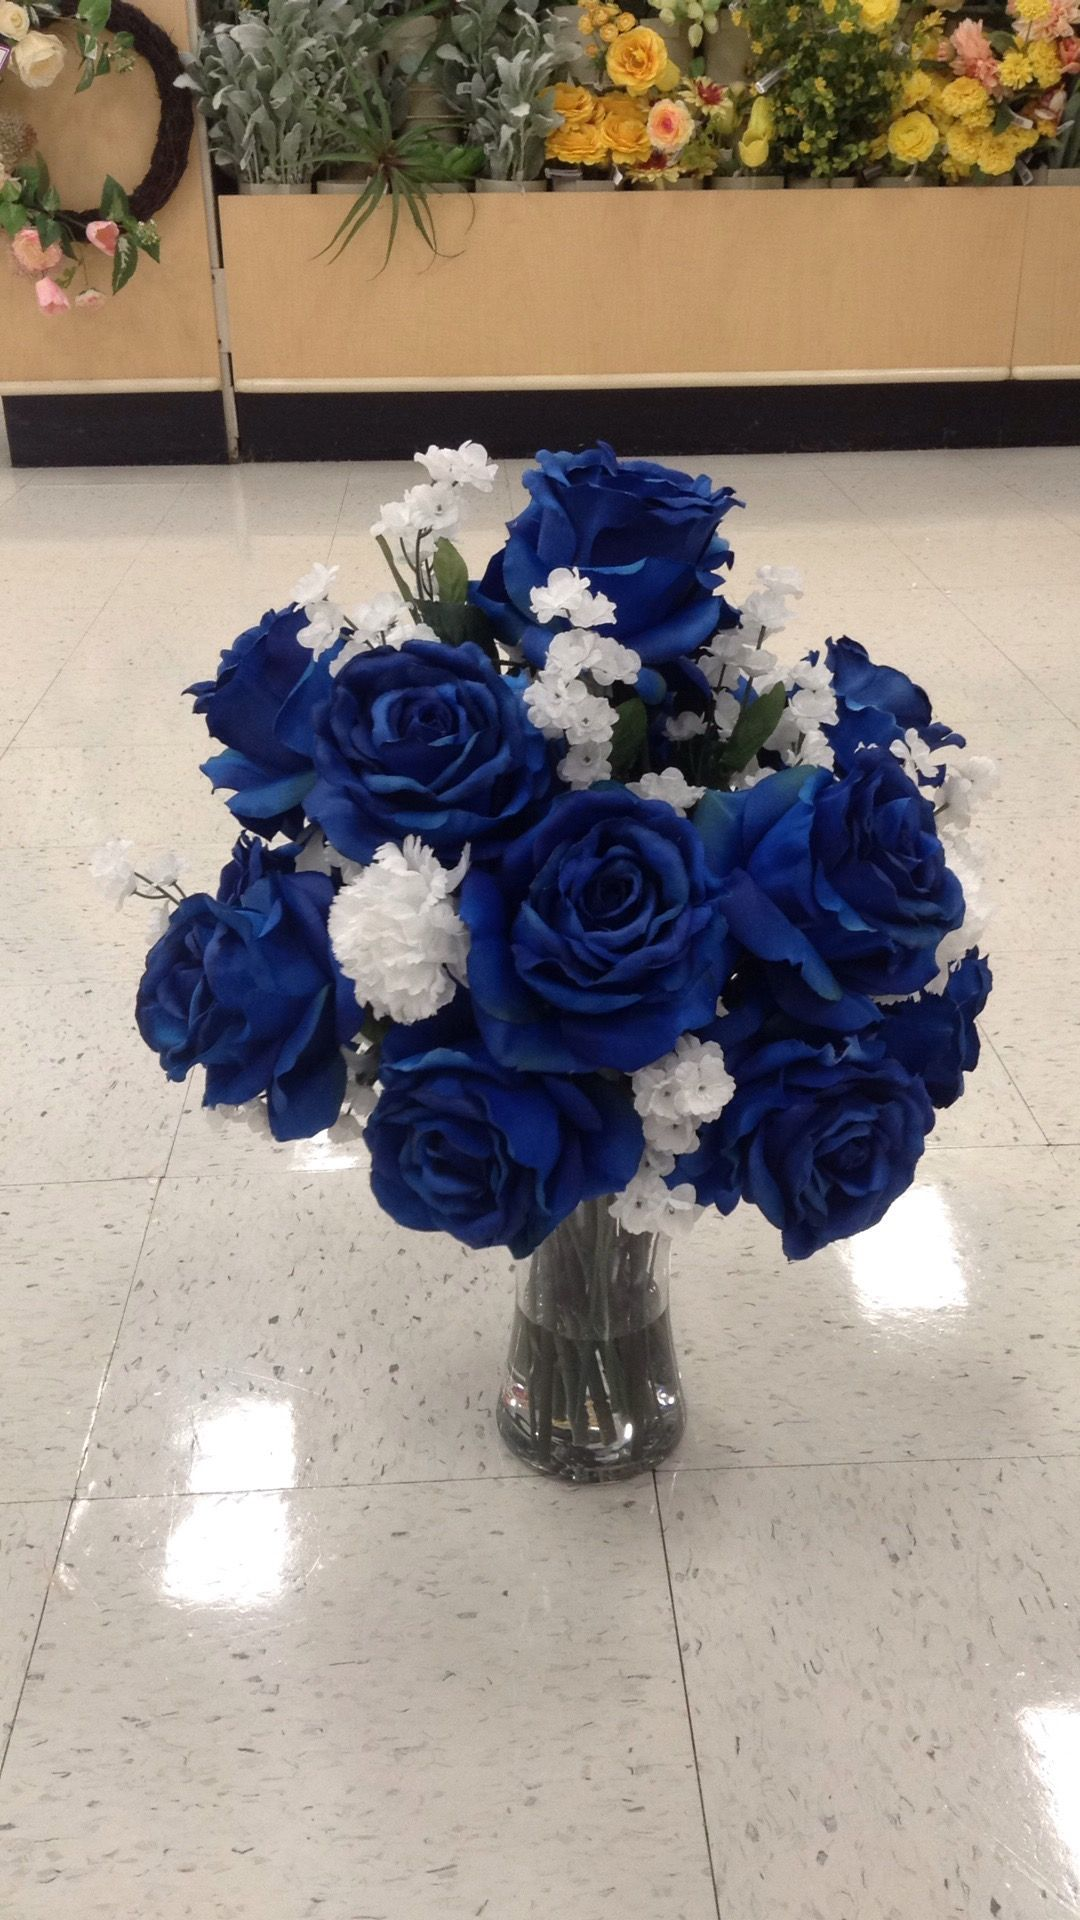 Custom Floral Arrangement Of Navy Blue Roses With White Baby S Breath And Carnations In A Flared Gla Blue Flower Arrangements Blue Carnations Rose Arrangements